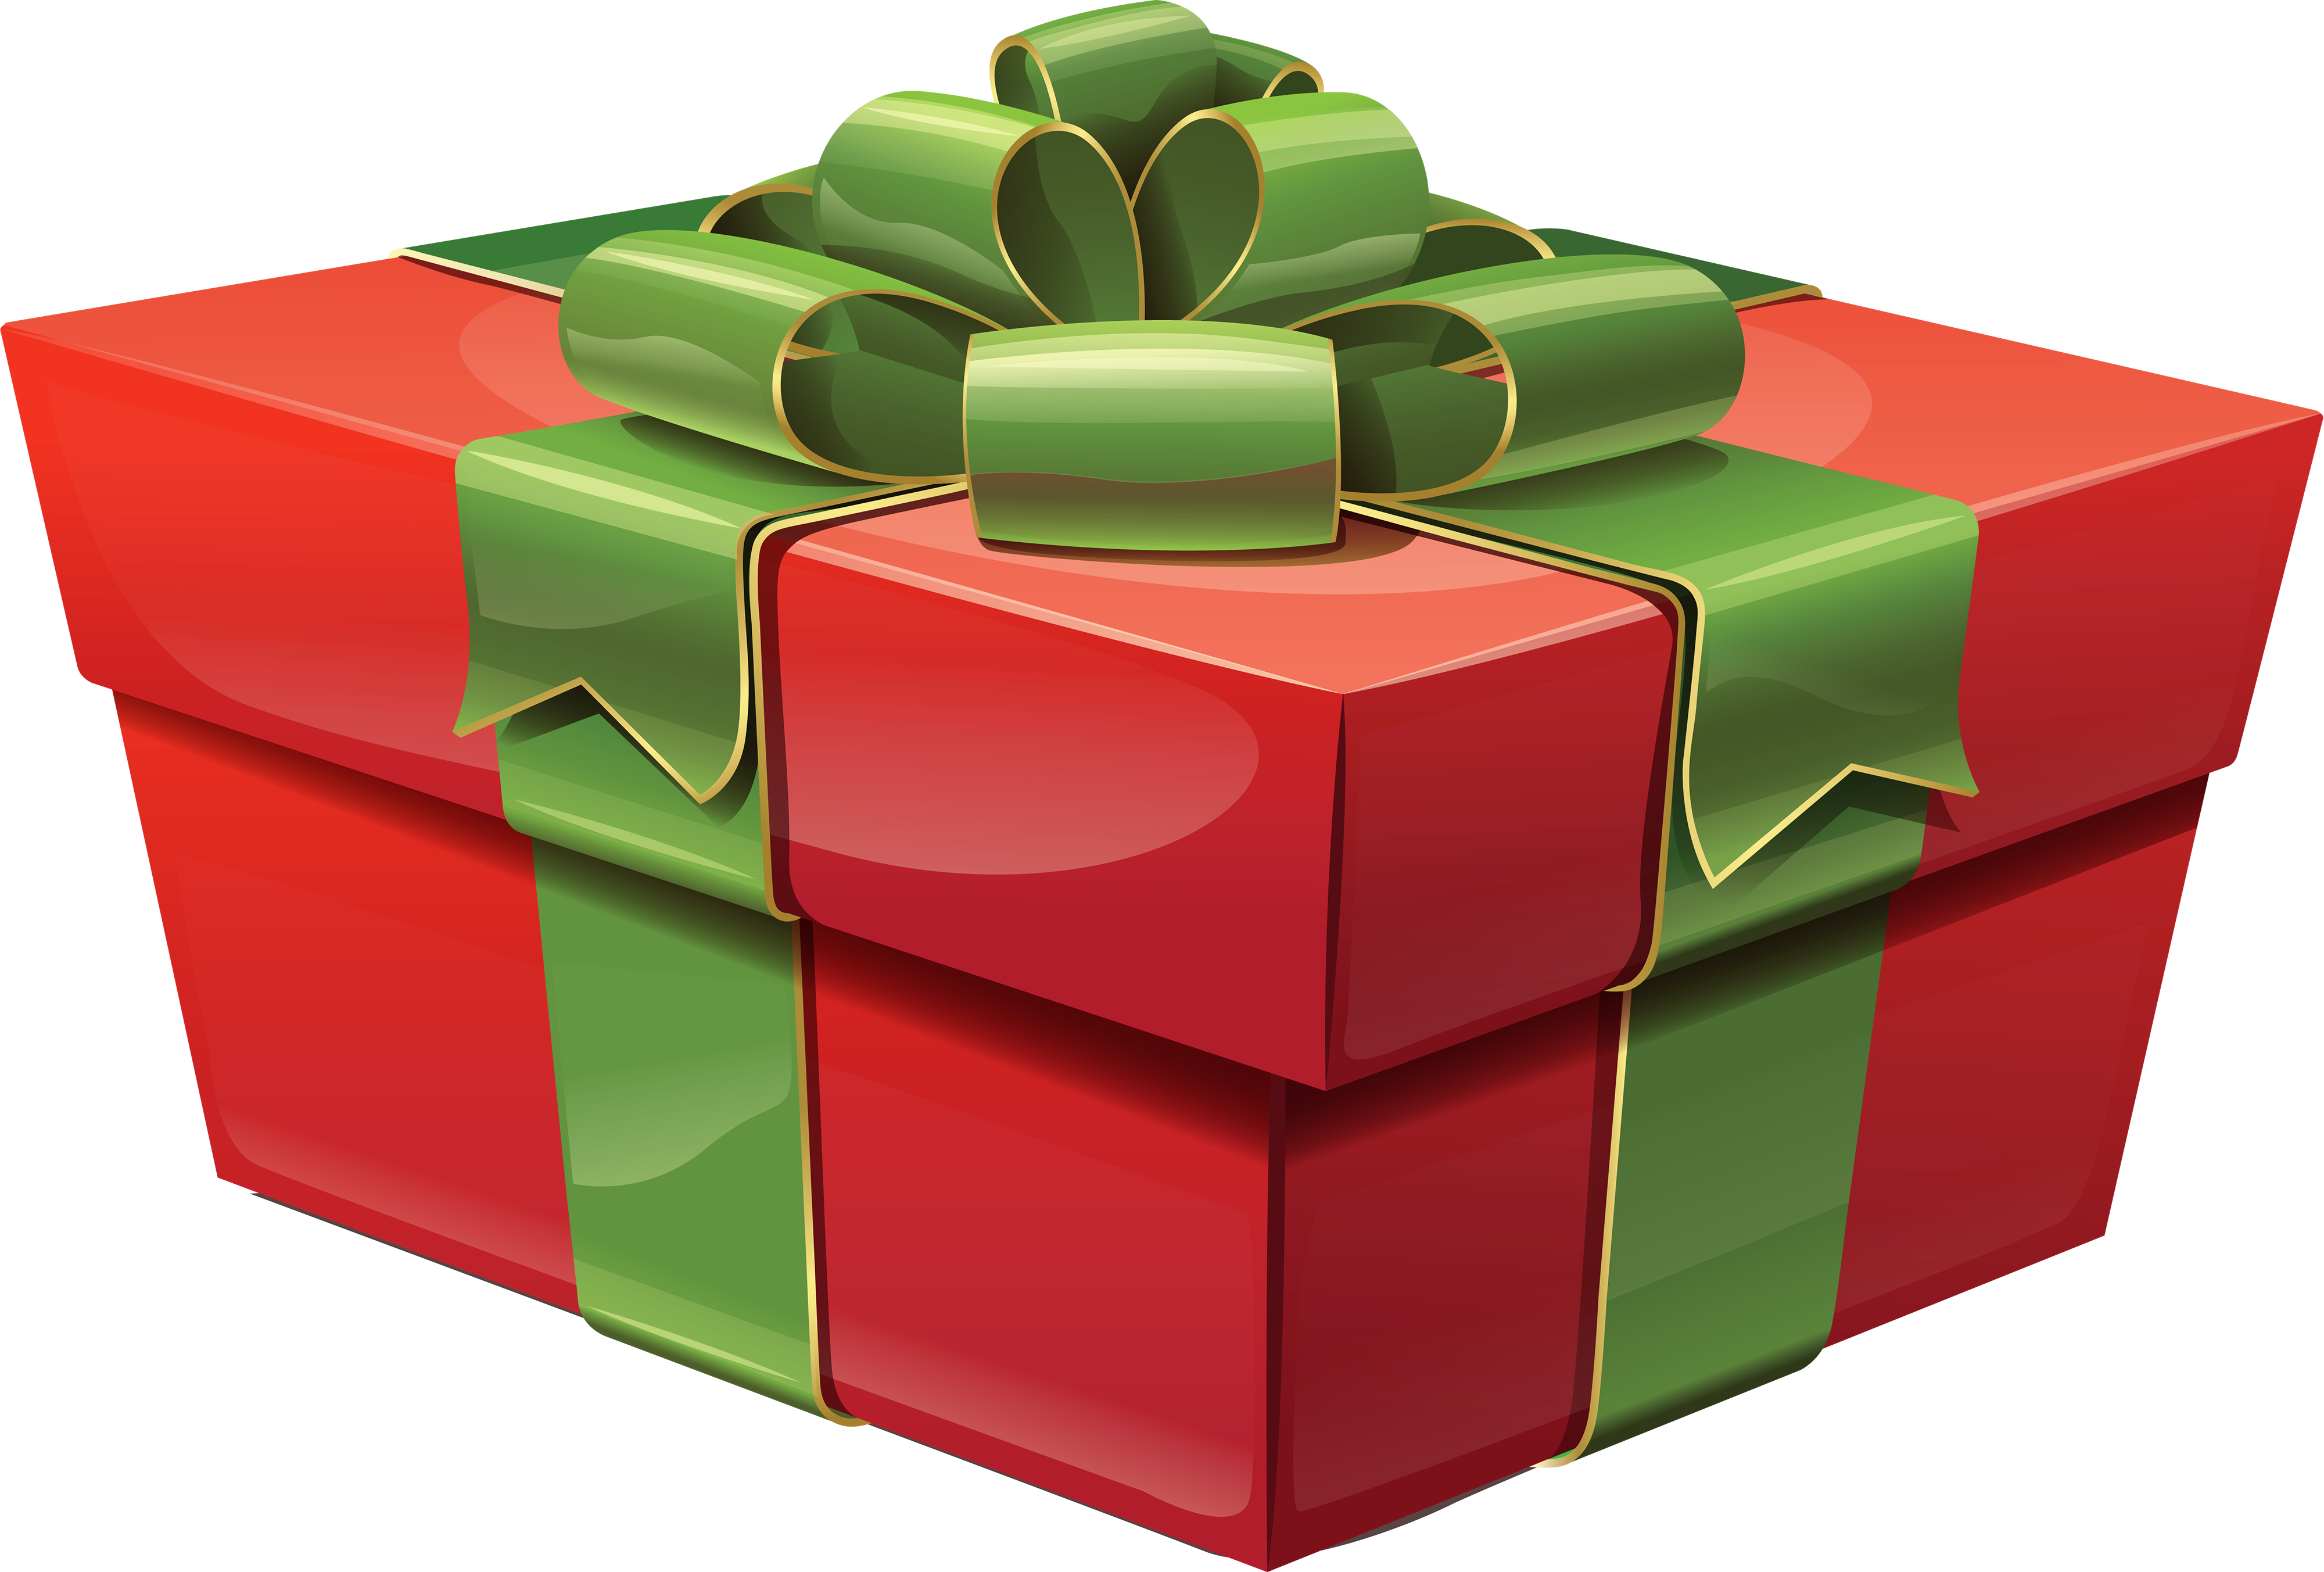 Boxes transparent png. Red large gift box